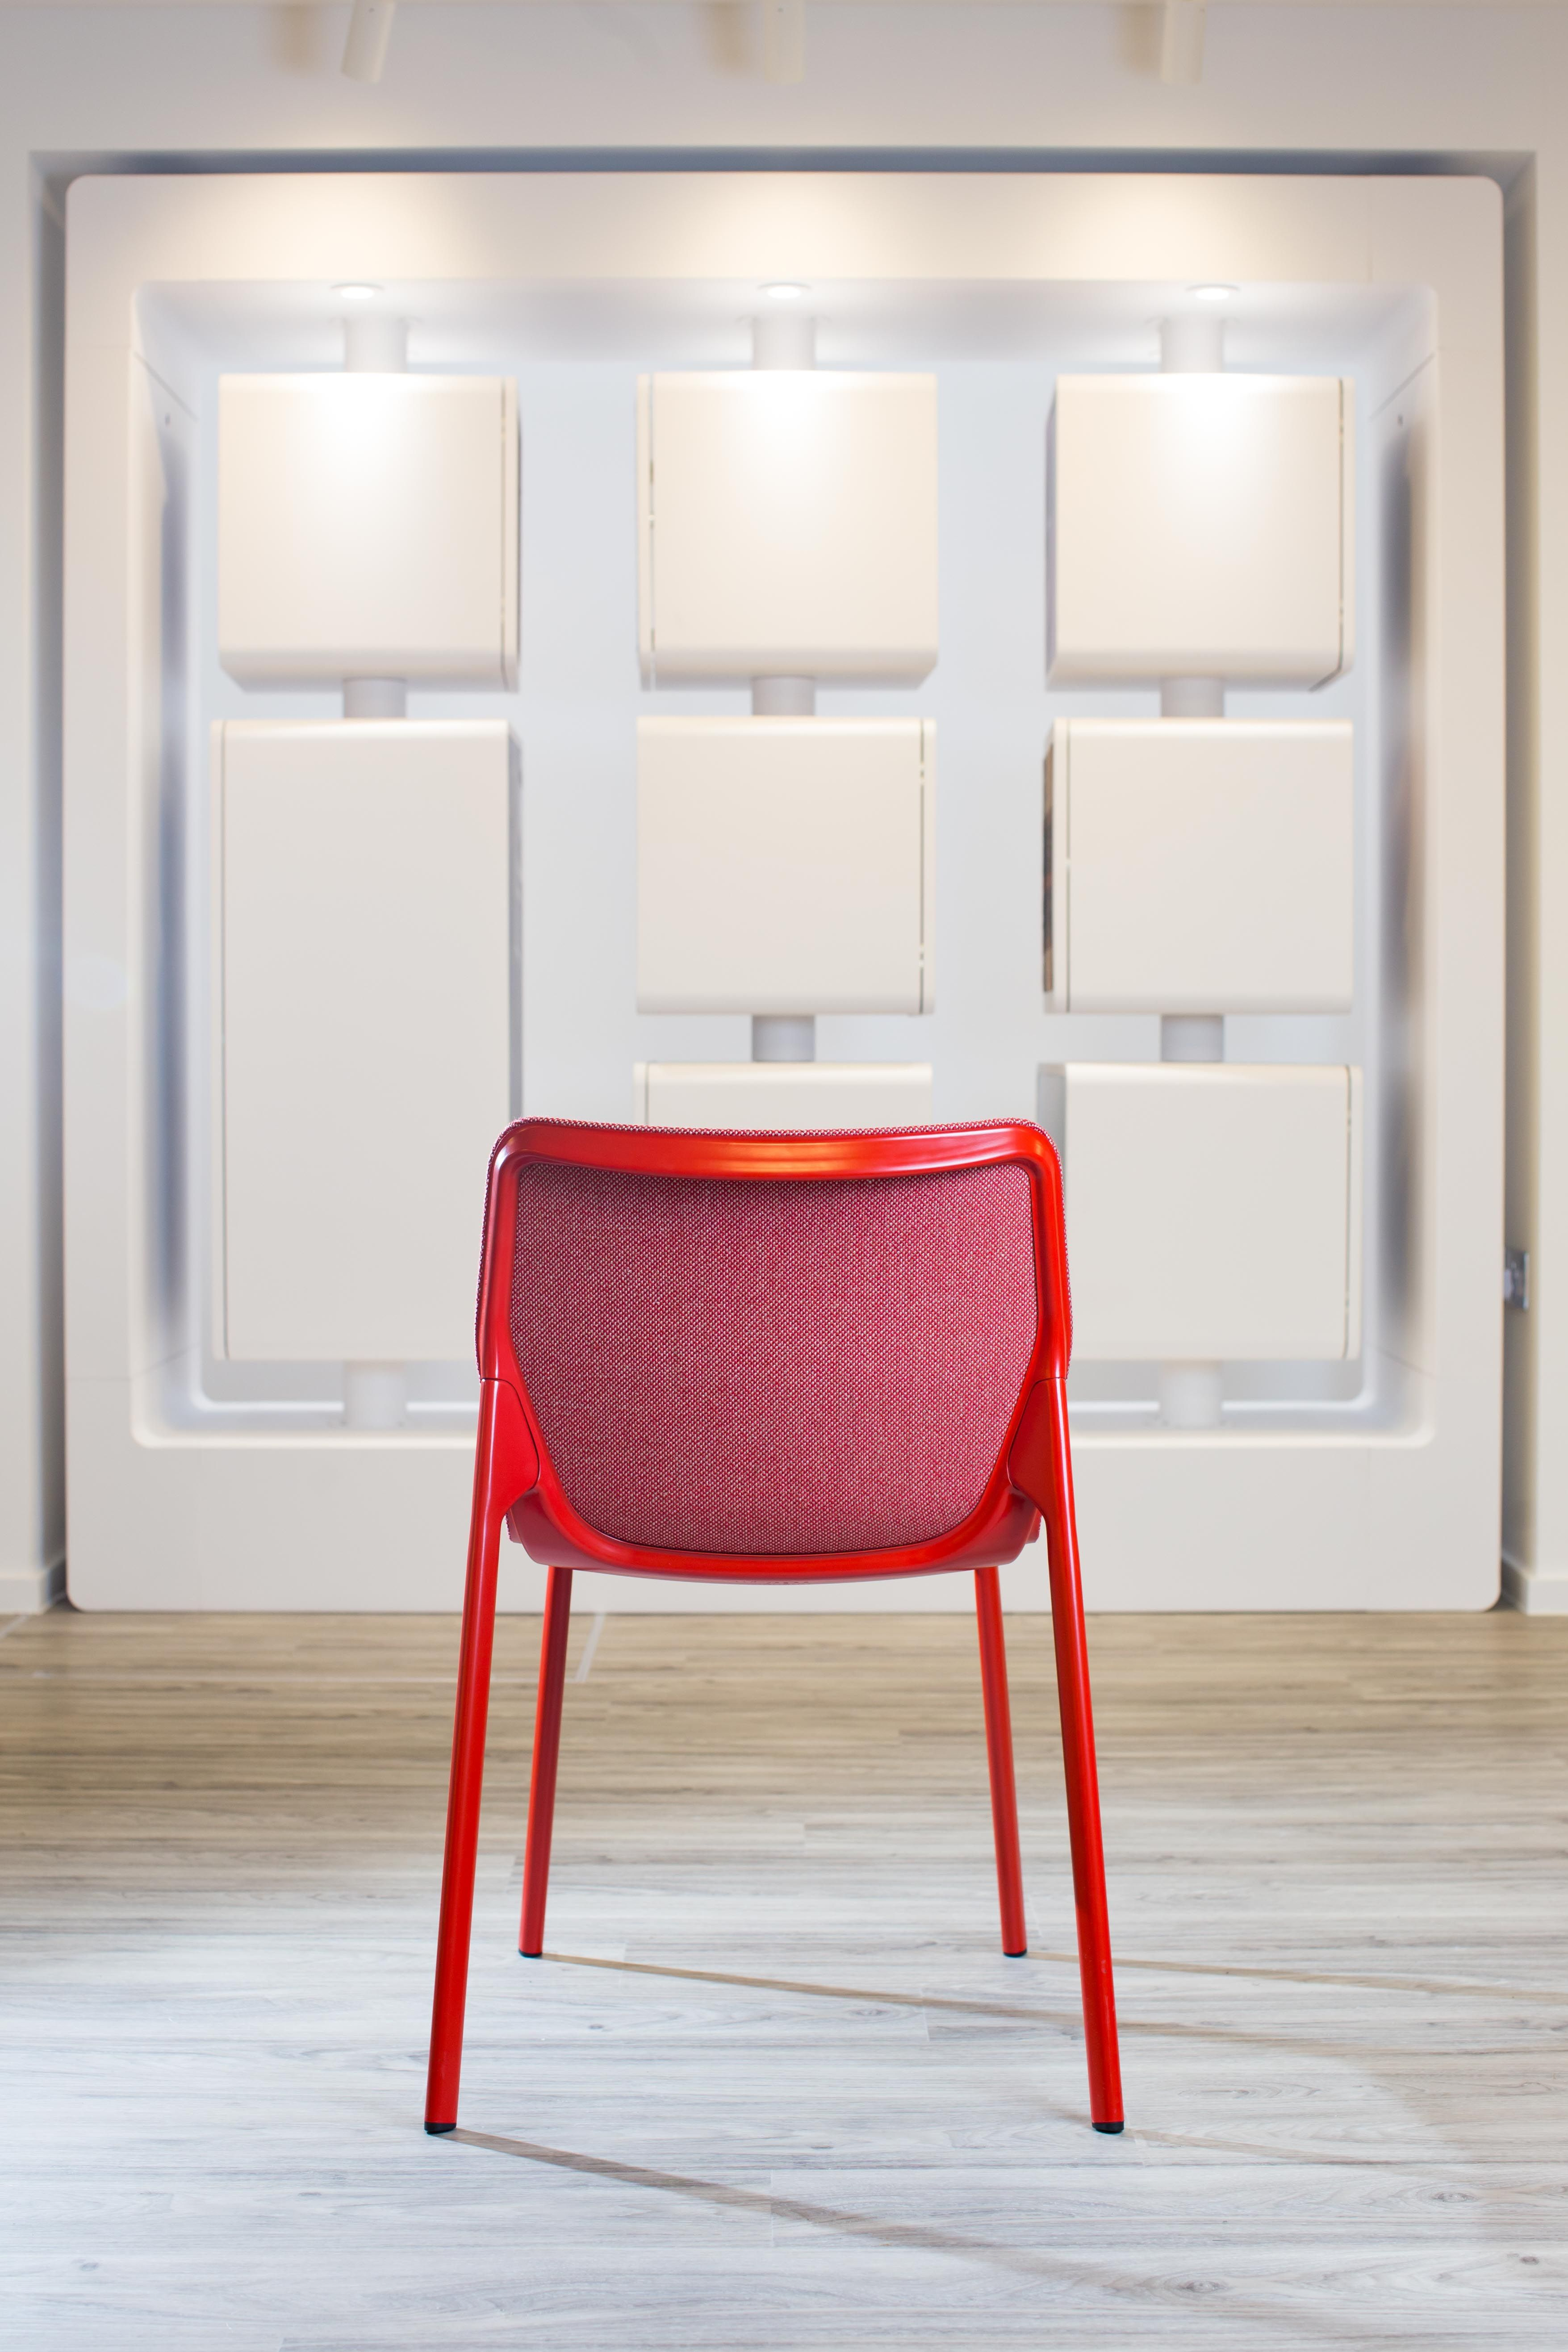 appealing 60s furniture design | CHASSIS multipurpose chair | Design: Stefan Diez ...